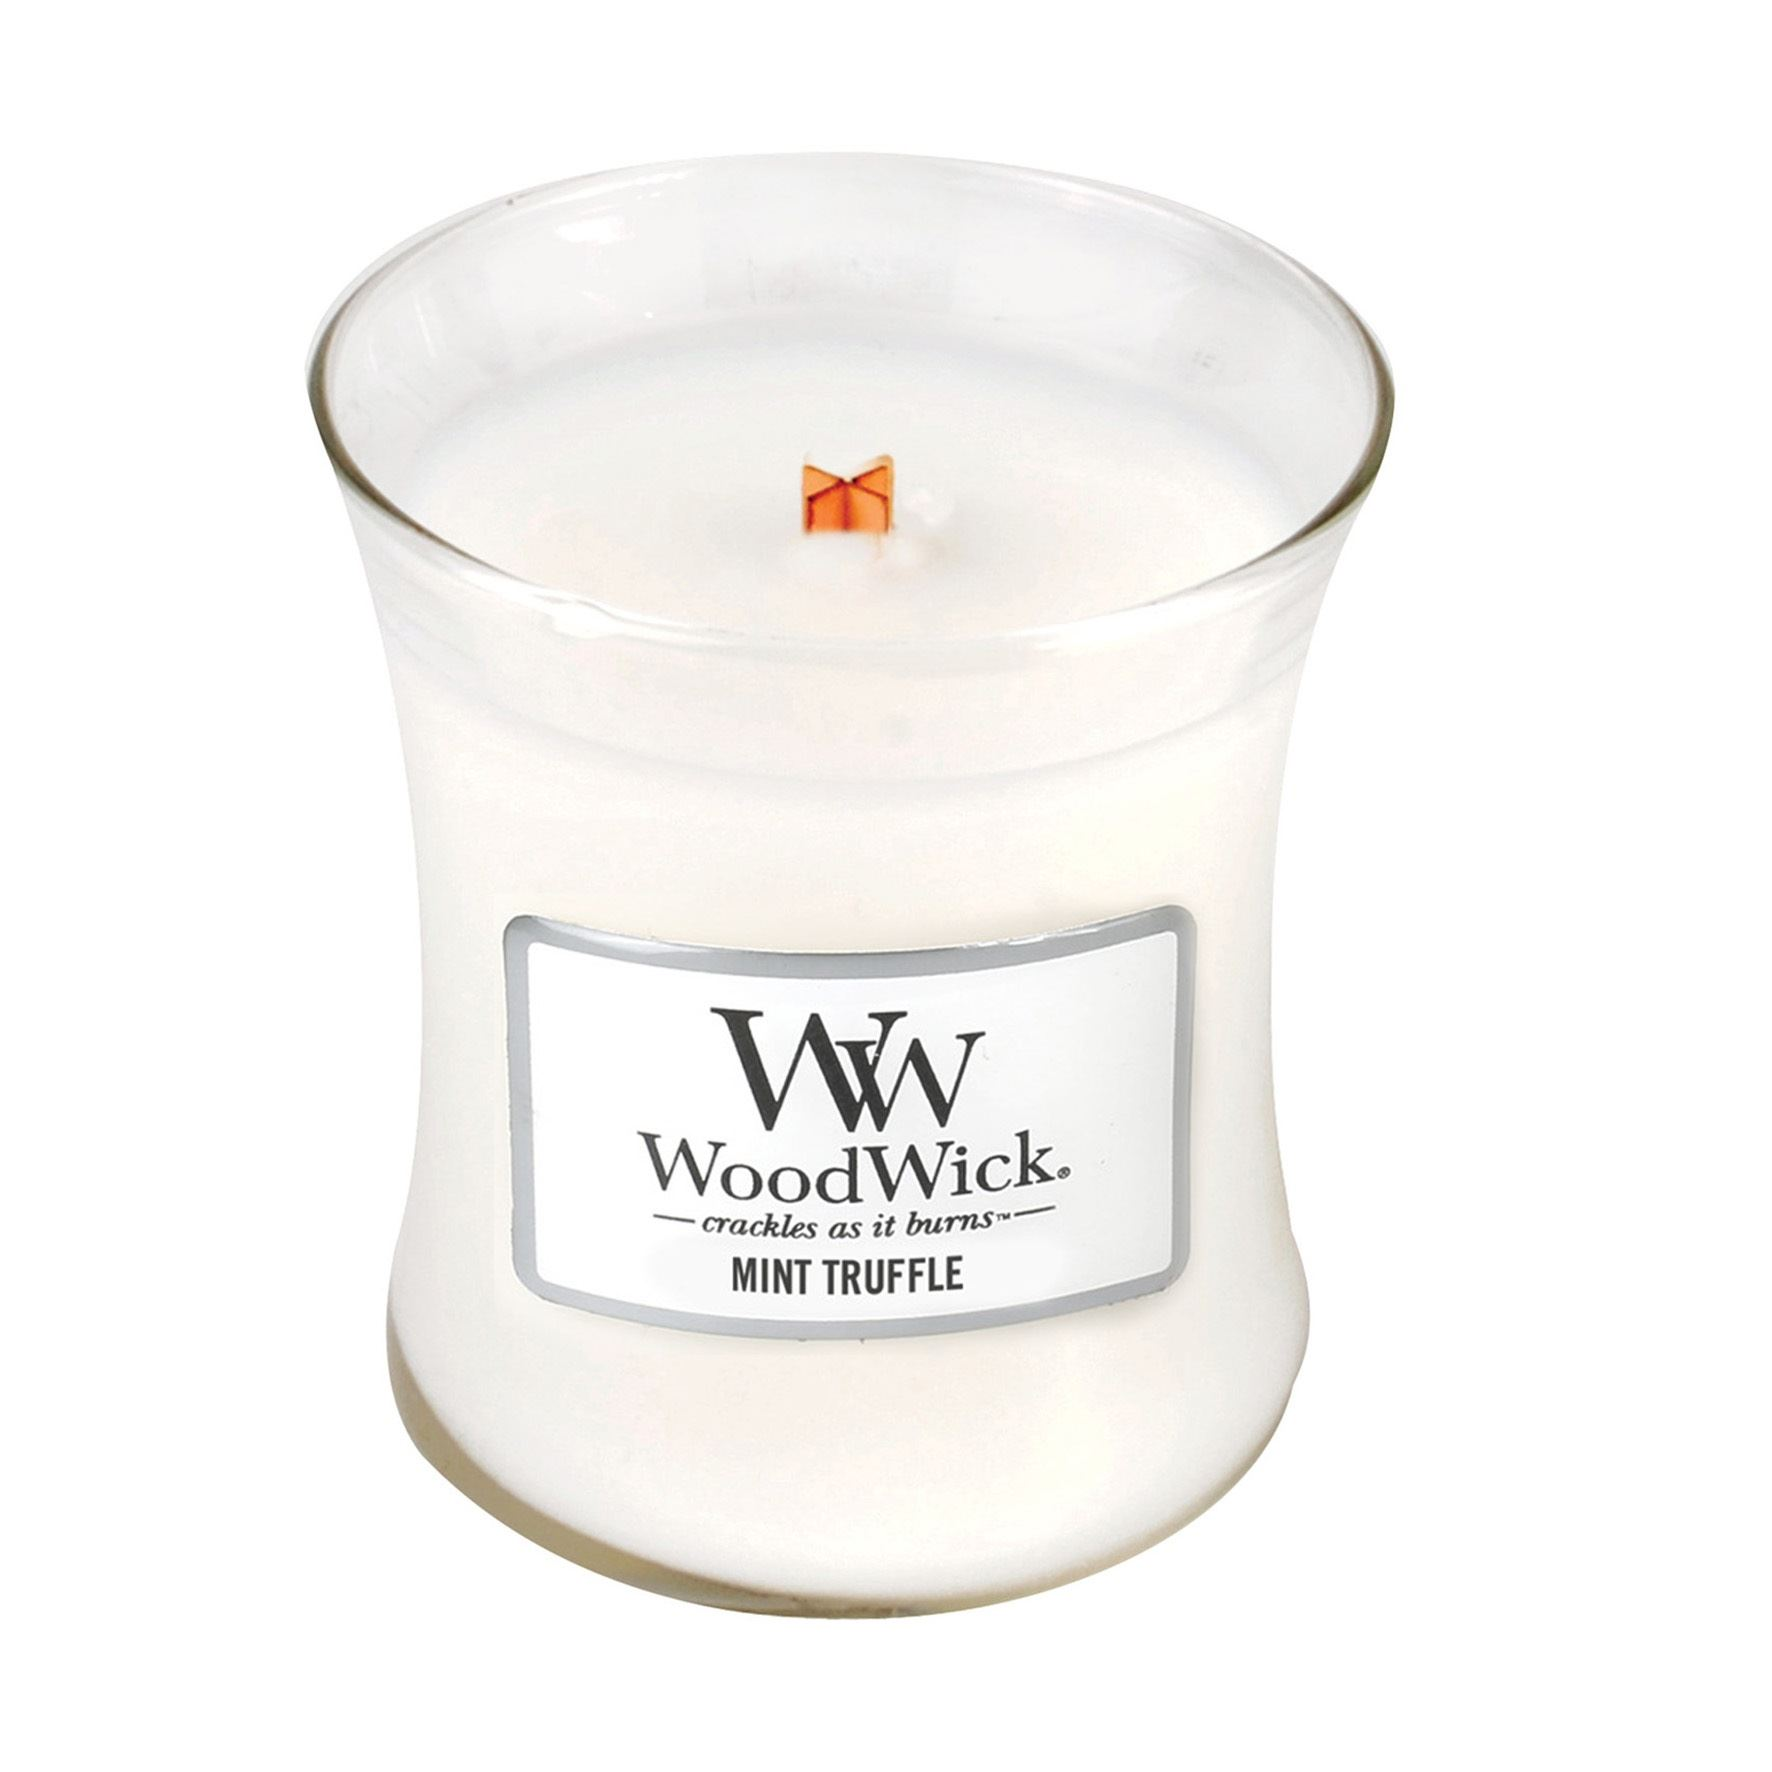 Woodwick-Christmas-Medium-Candle-Jar-10oz-Scented-Crackle-Fragrance-Home-Gift